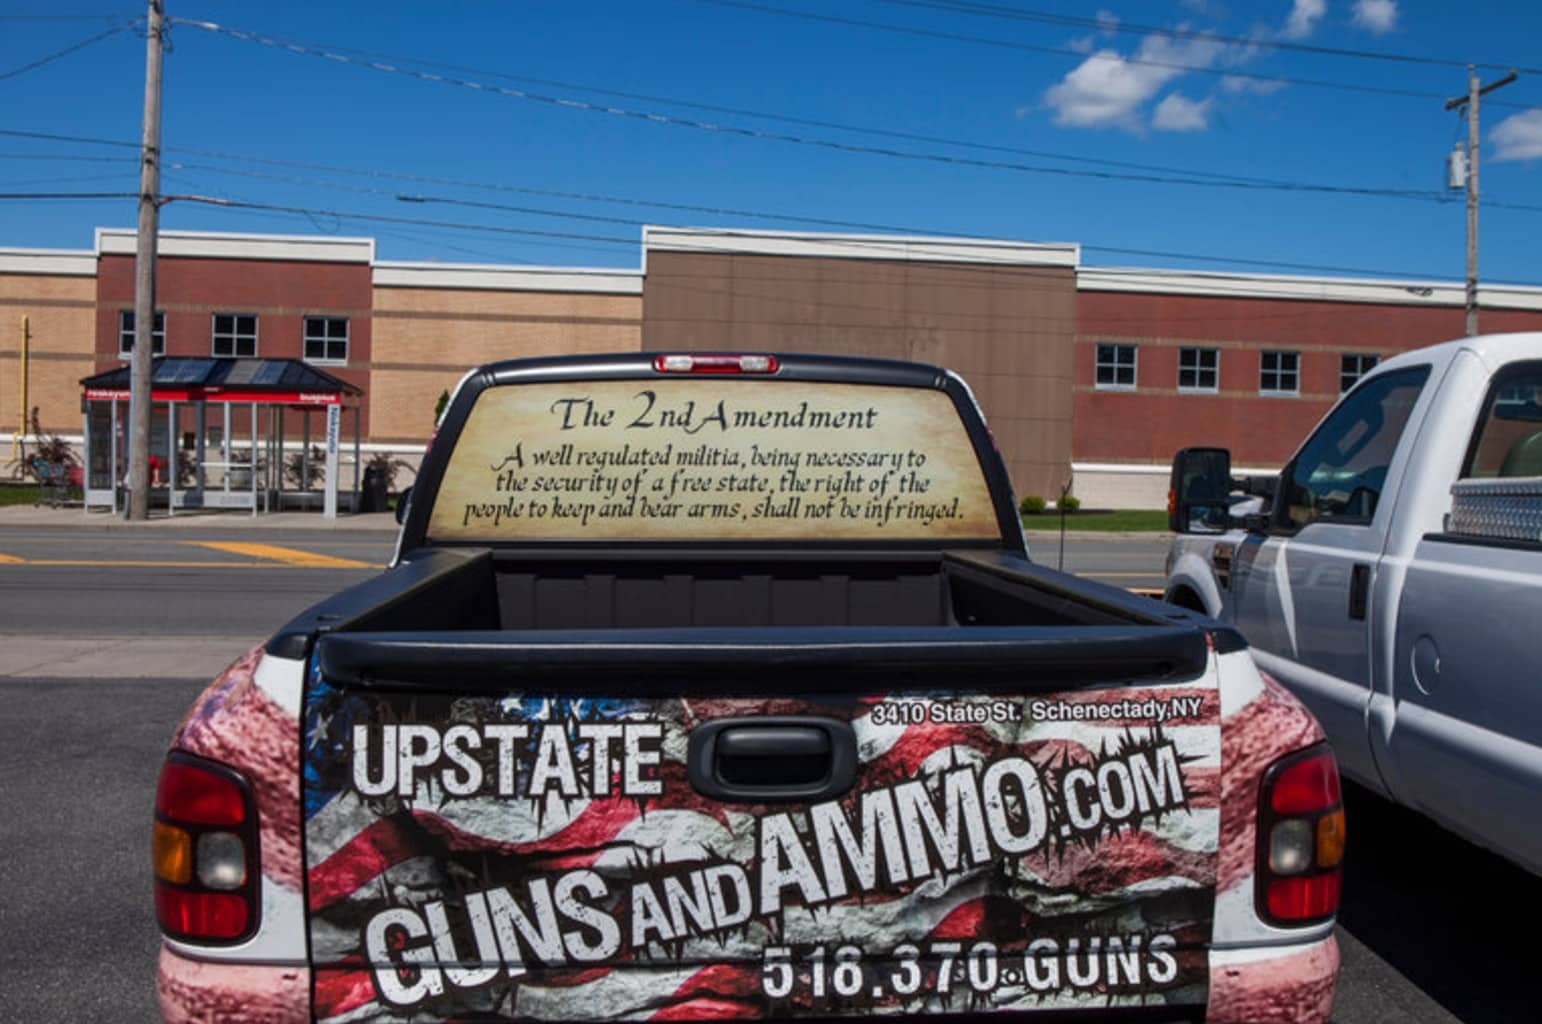 A truck is wrapped in graphics reading Upstate Guns and Ammo, the store Henry Bello legally purchased the AM-15 rifle he used to allegedly kill a clinician and himself after wounding six others at a Bronx hospital last week. (Photo: New York Times)